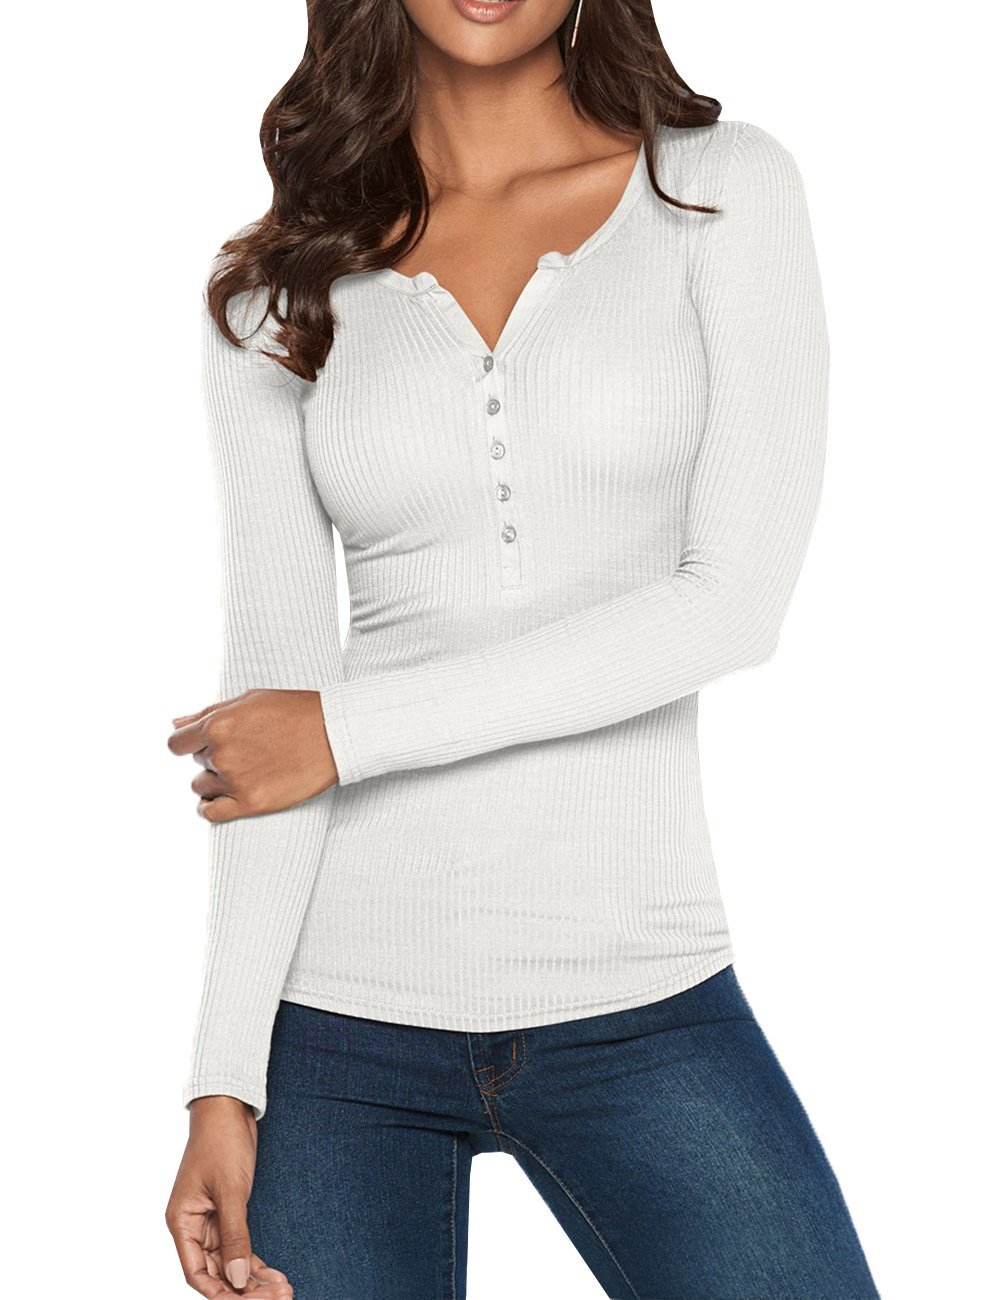 Pxmoda Womens Causal Button V Neck Henley T Shirts Autumn Long Sleeve Bodycon Ribbed Blouse Tops (M, White)